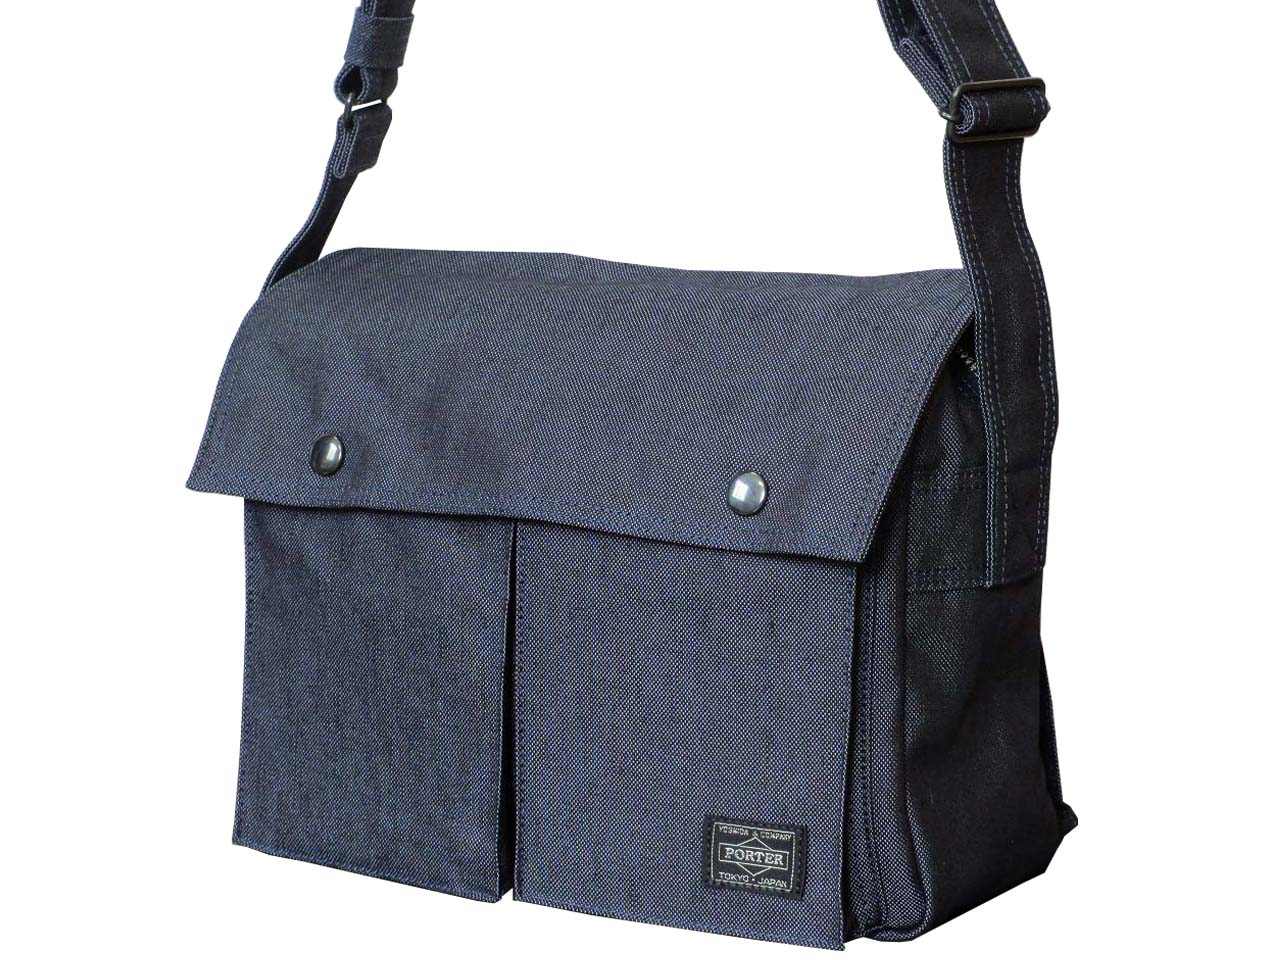 (Only in JAPAN.) 吉田カバン PORTER SMOKY ポータ スモーキー ショルダーバッグ 592-06582 (This product is not for overseas customer.)